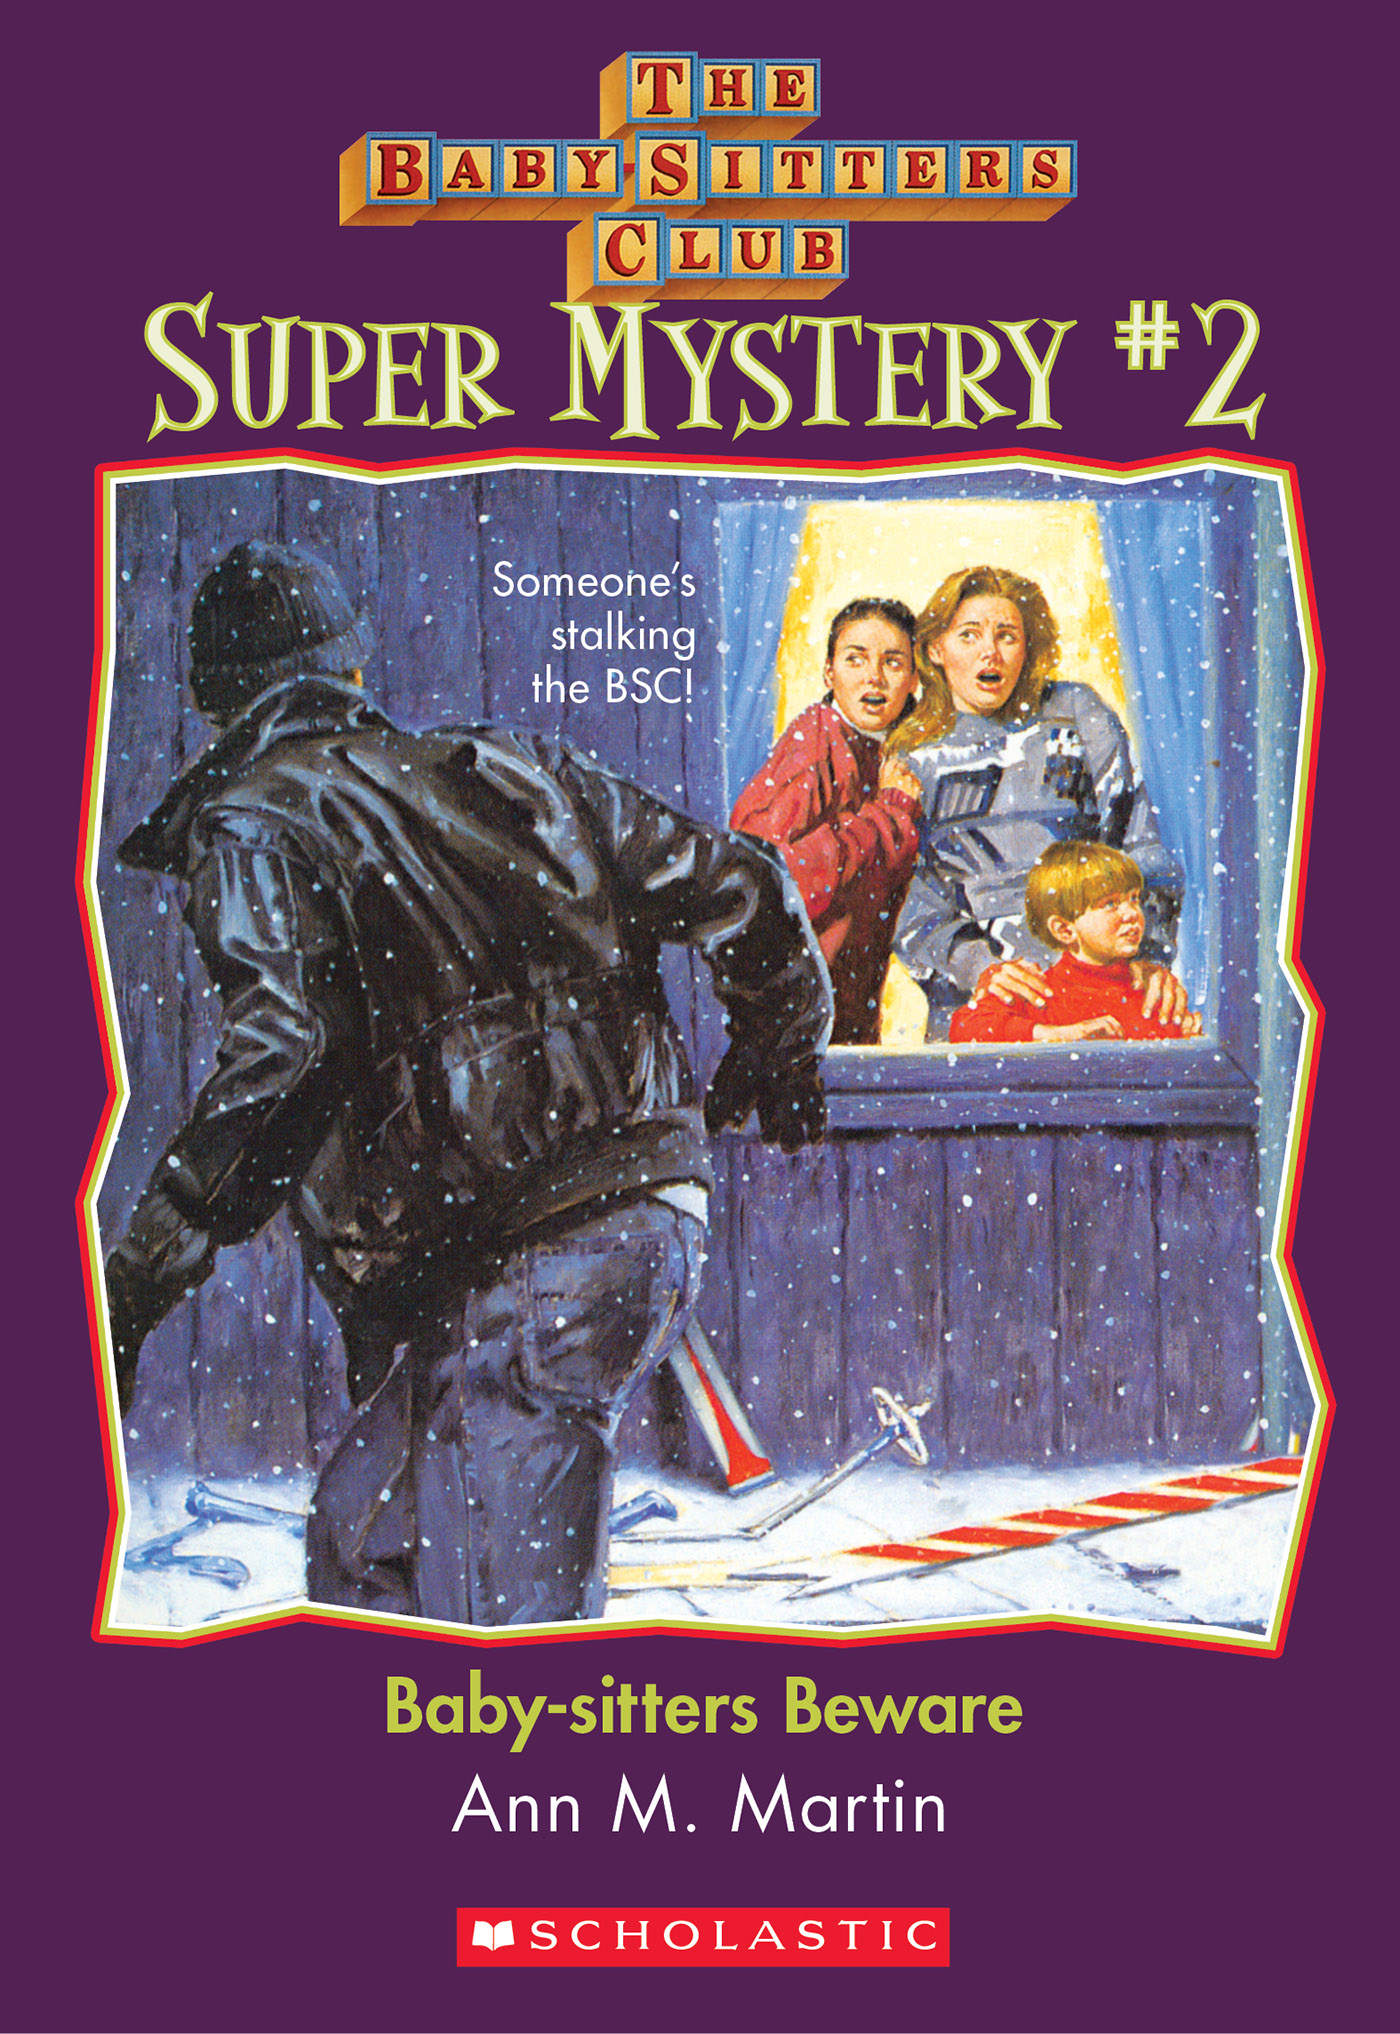 The Baby-Sitters Club Super Mystery #2: Baby-Sitters Beware